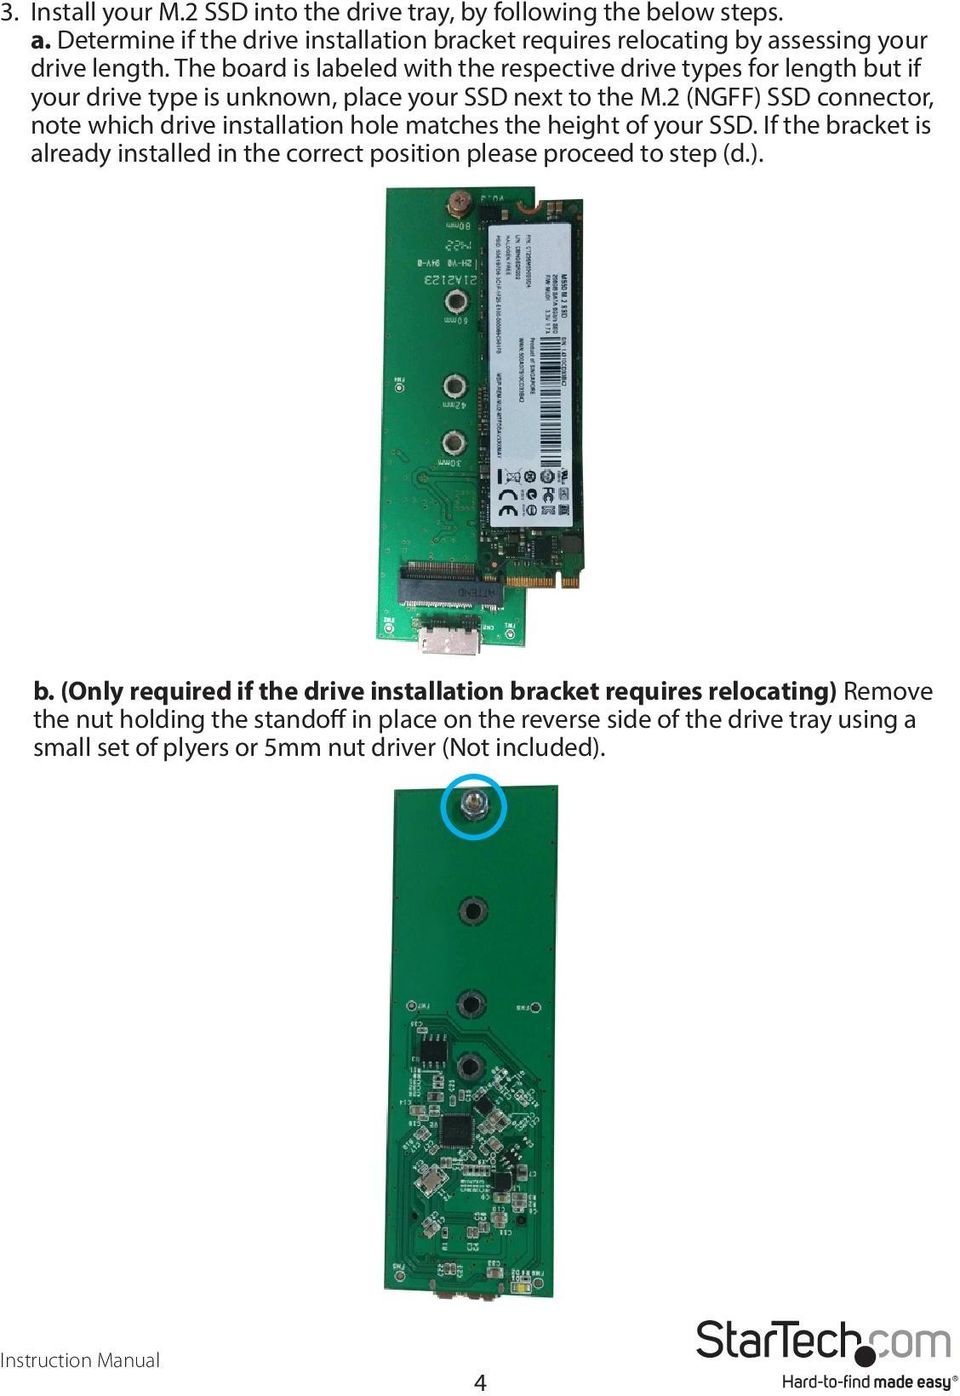 2 (NGFF) SSD connector, note which drive installation hole matches the height of your SSD.